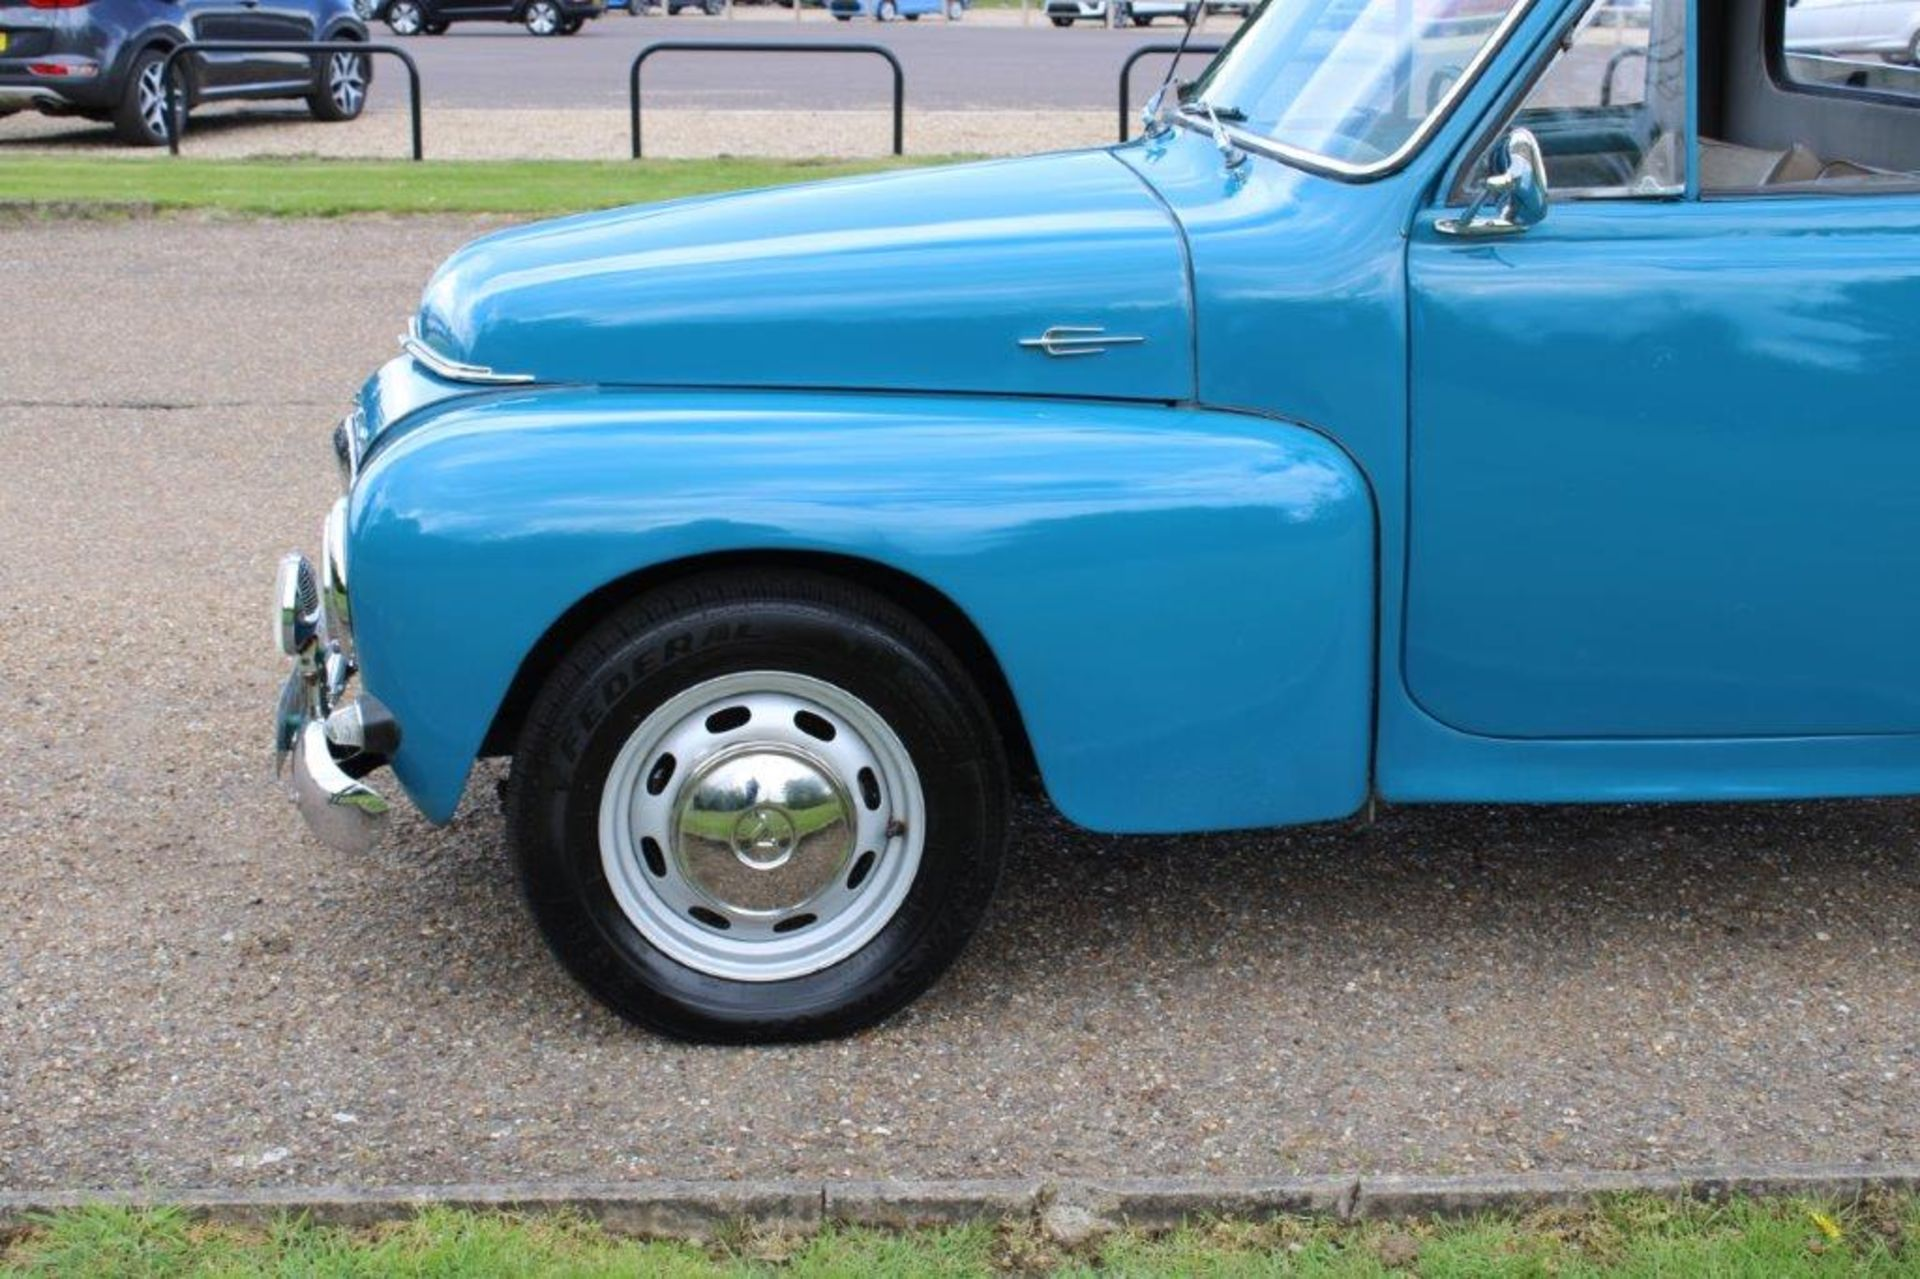 1961 Volvo P 21114 A Pick-Up LHD - Image 10 of 25